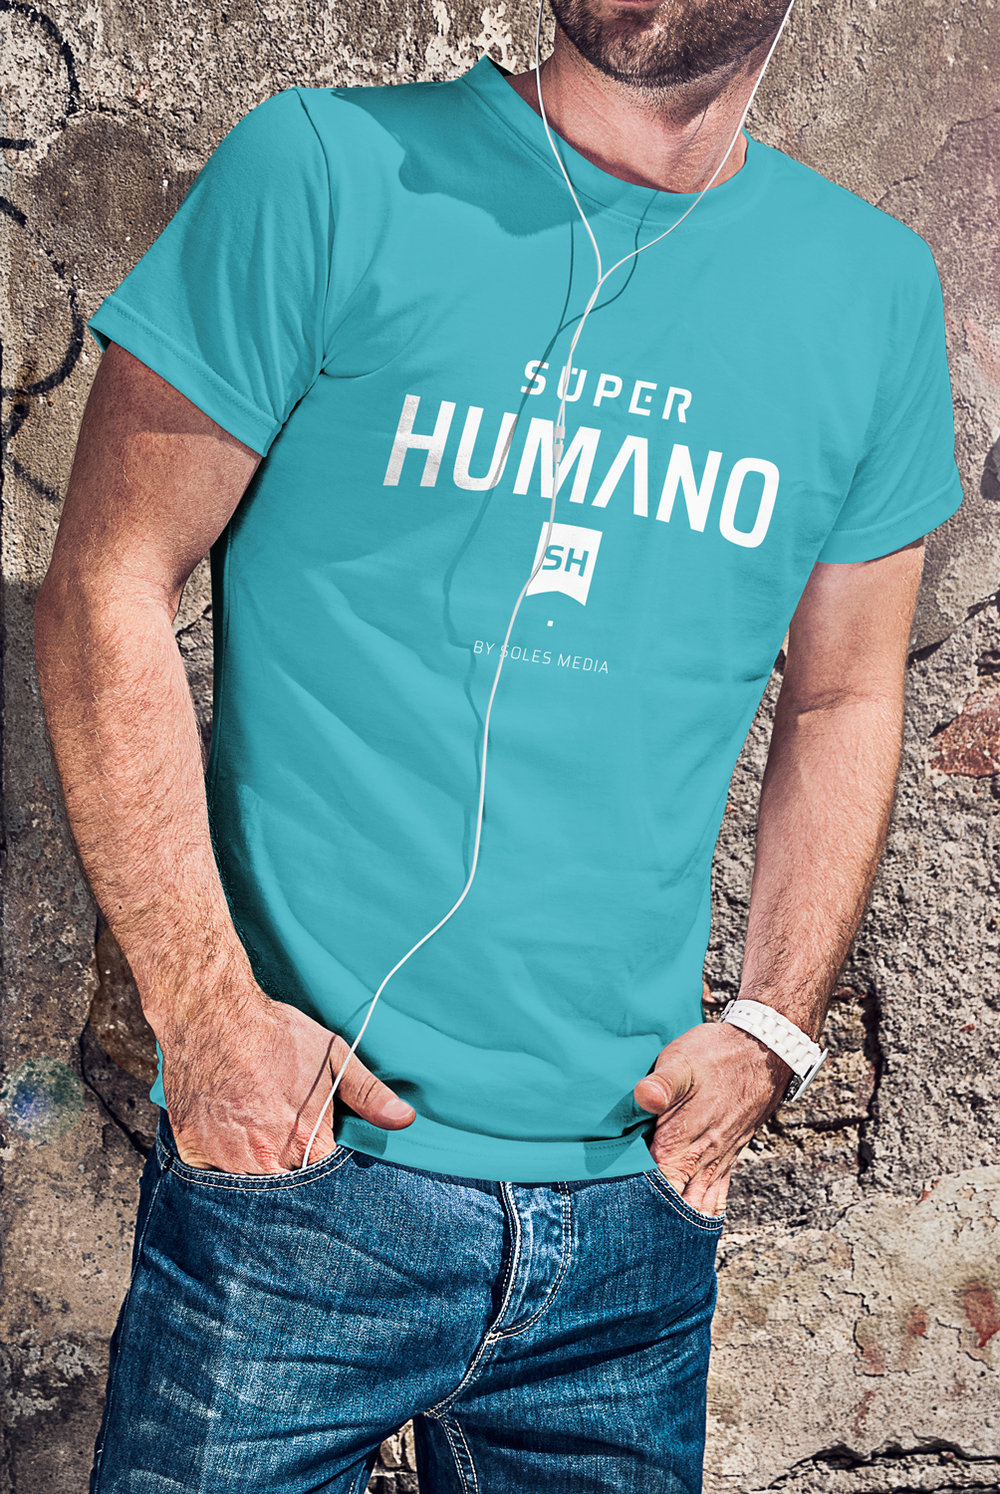 logo-3-shirt-man.jpg